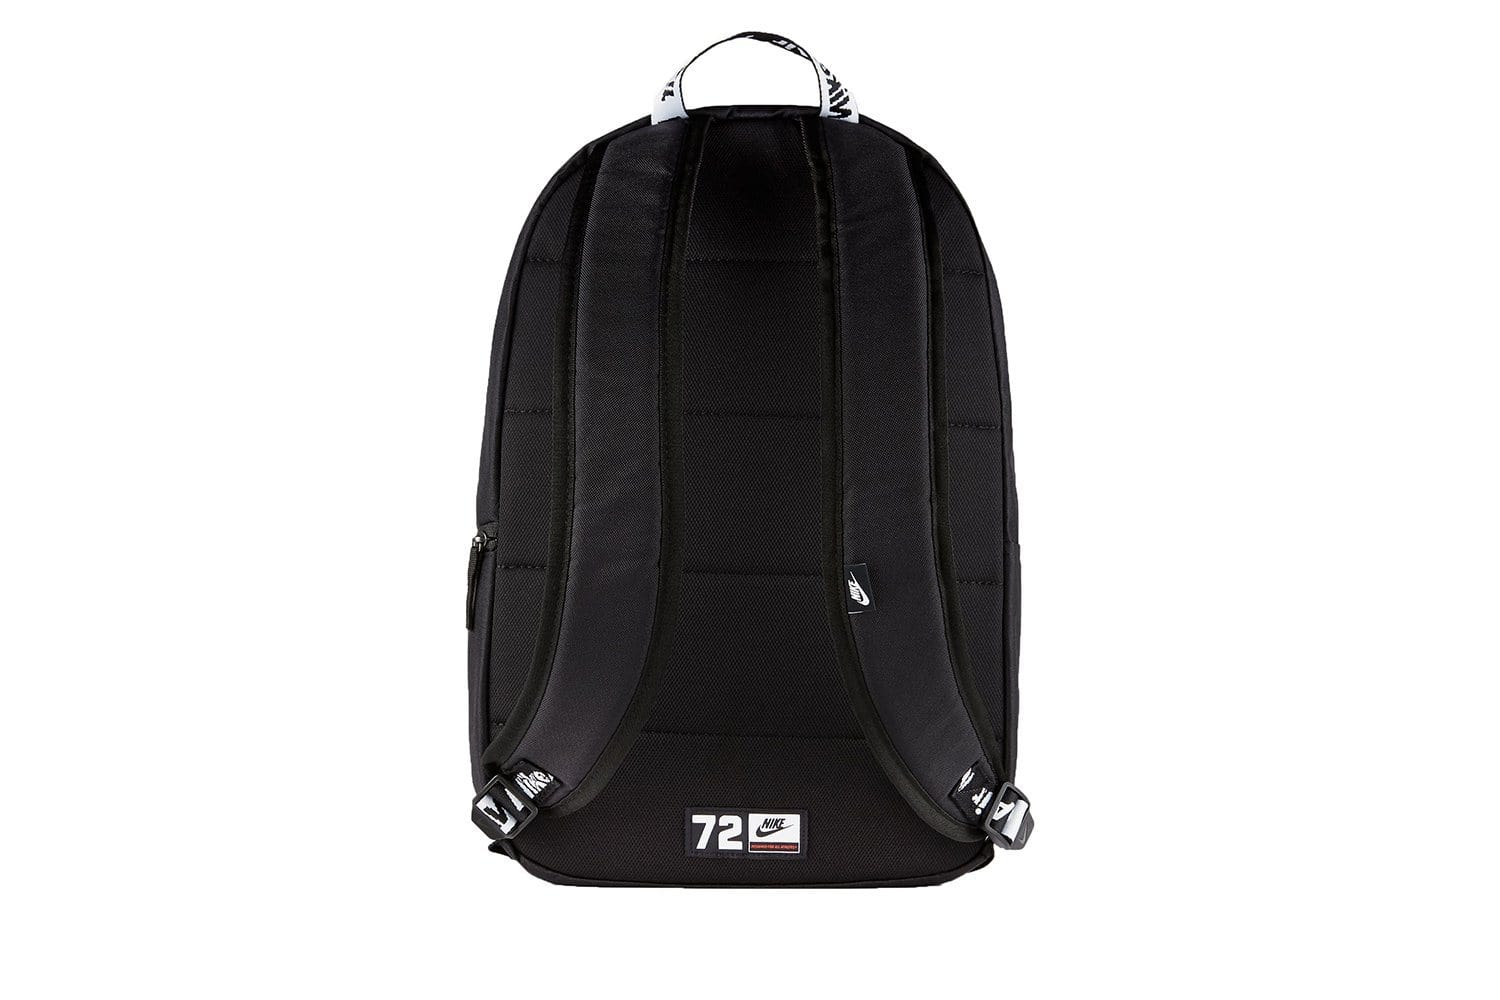 NIKE AIR HERITAGE BACKPACK - CW9265-011 ACCESSORIES NIKE